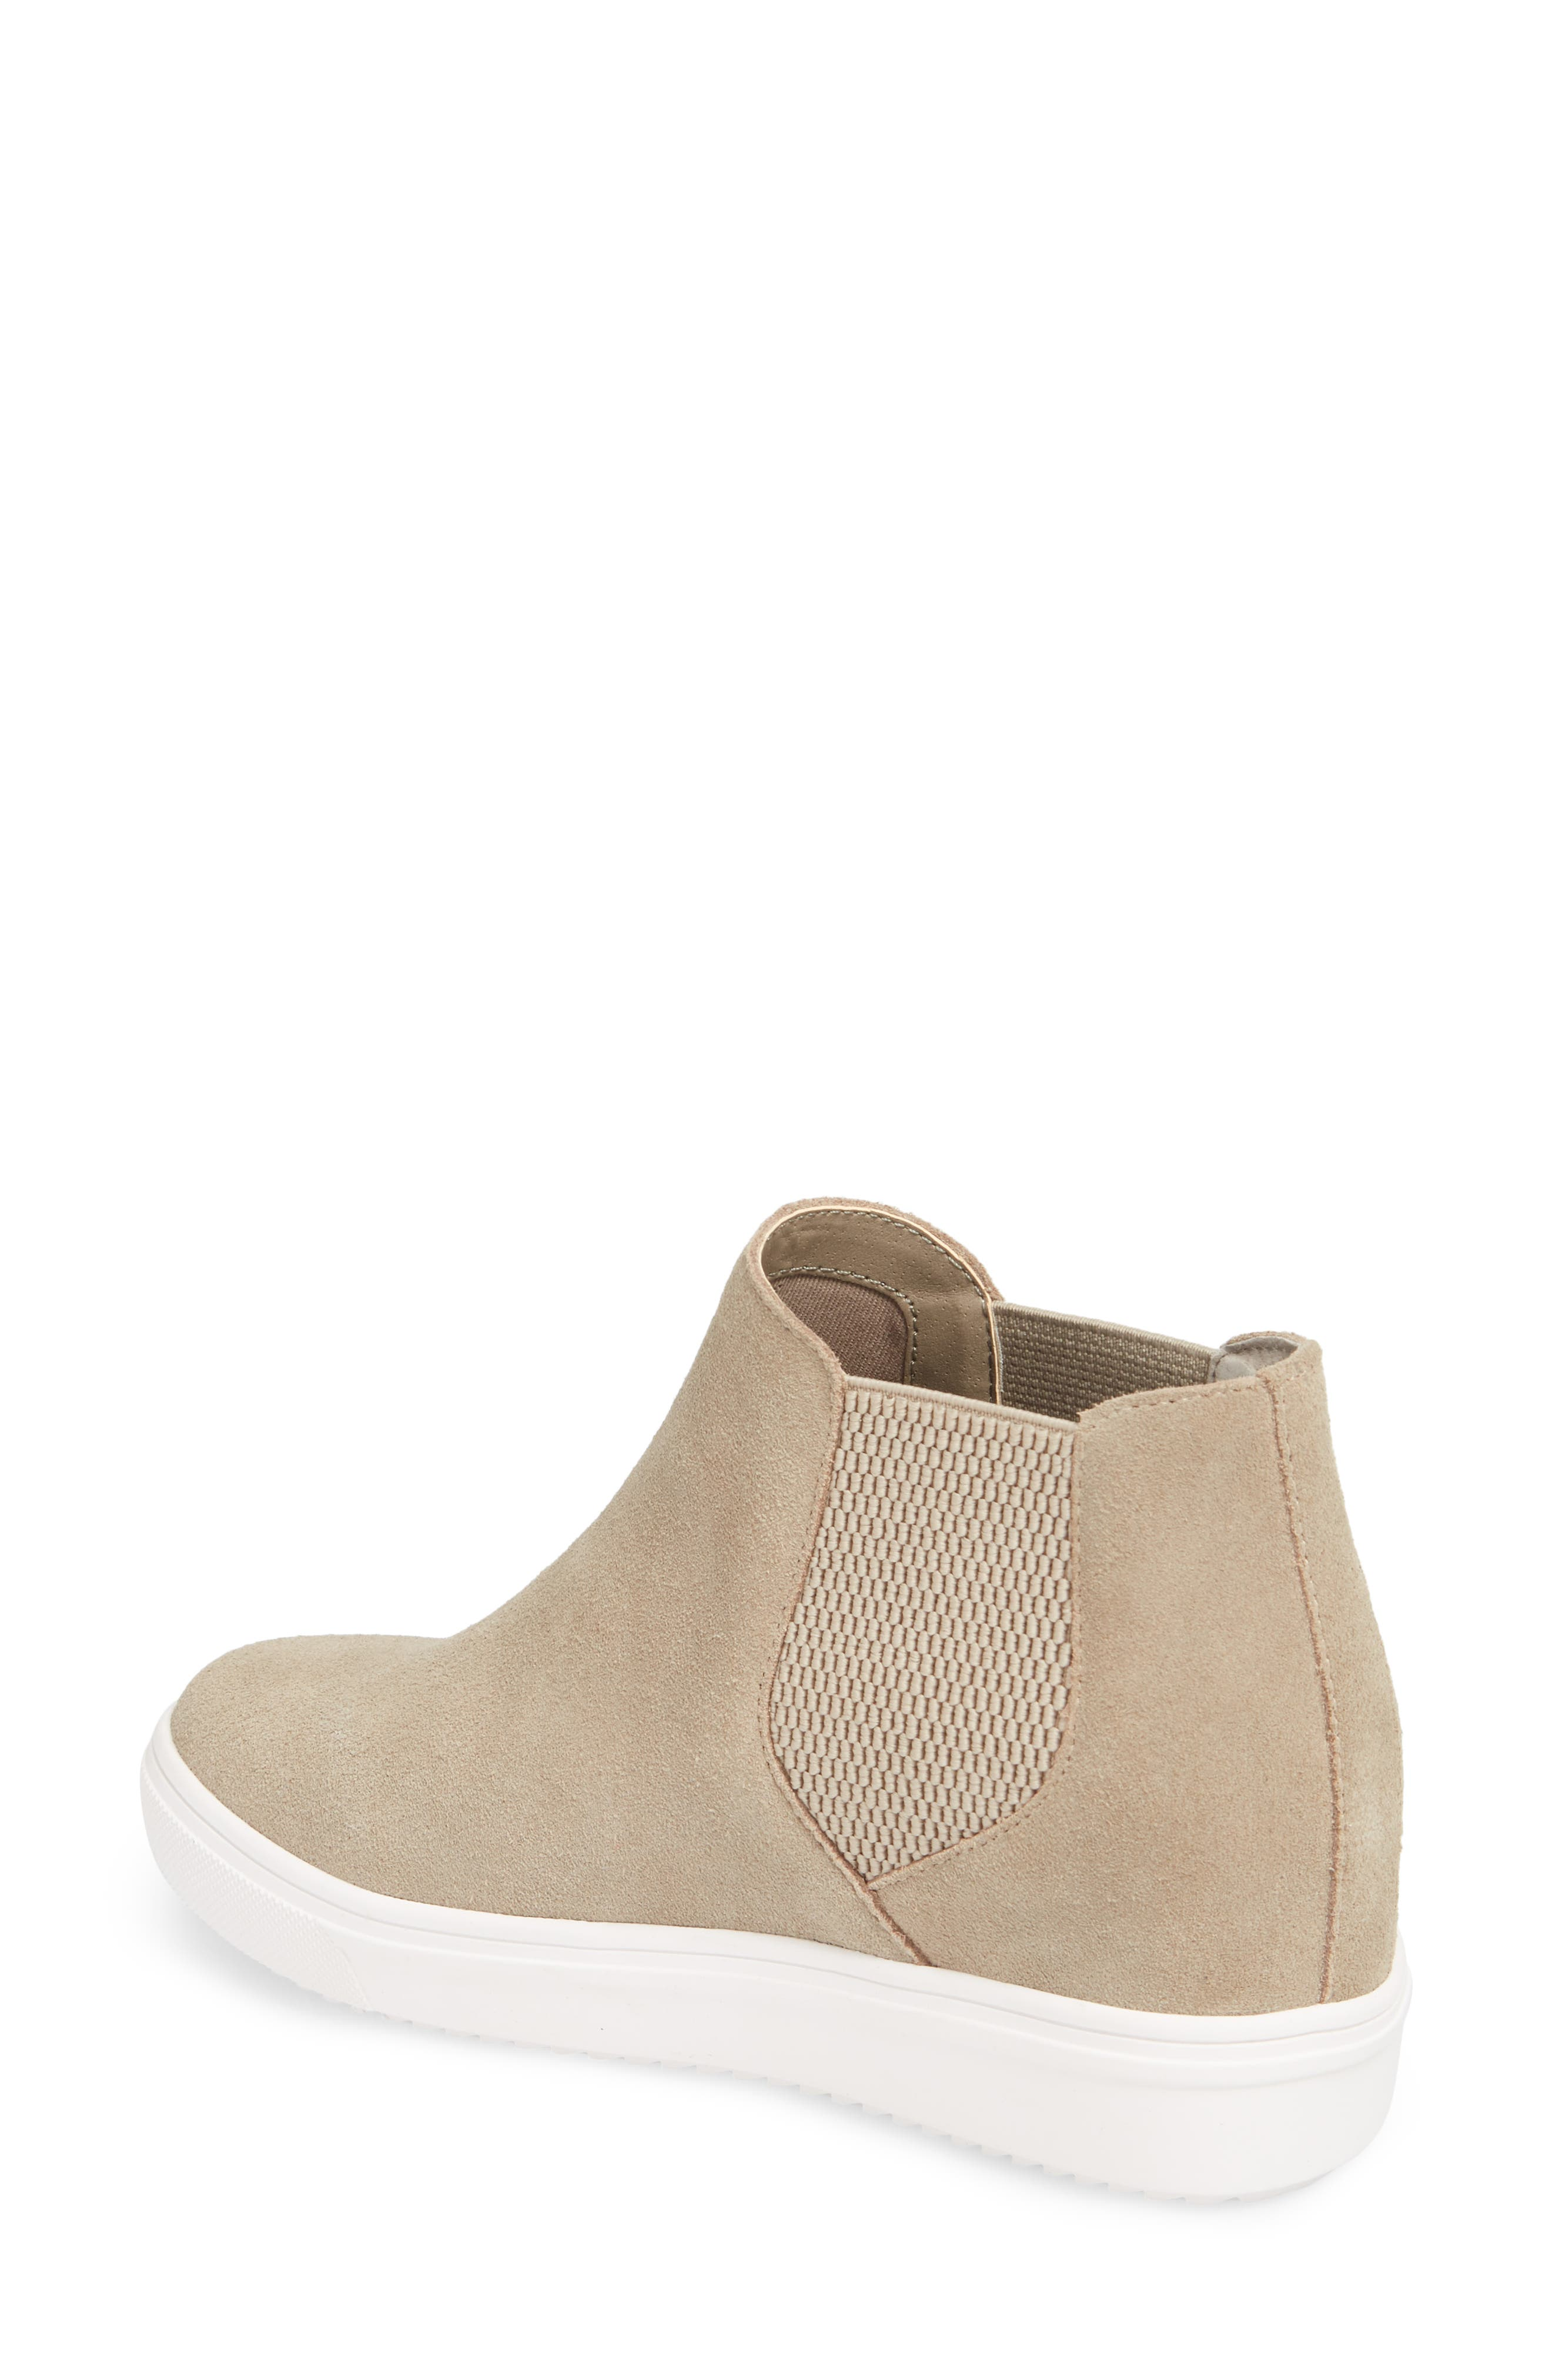 Sultan Chelsea Wedge Sneaker,                             Alternate thumbnail 2, color,                             TAUPE SUEDE